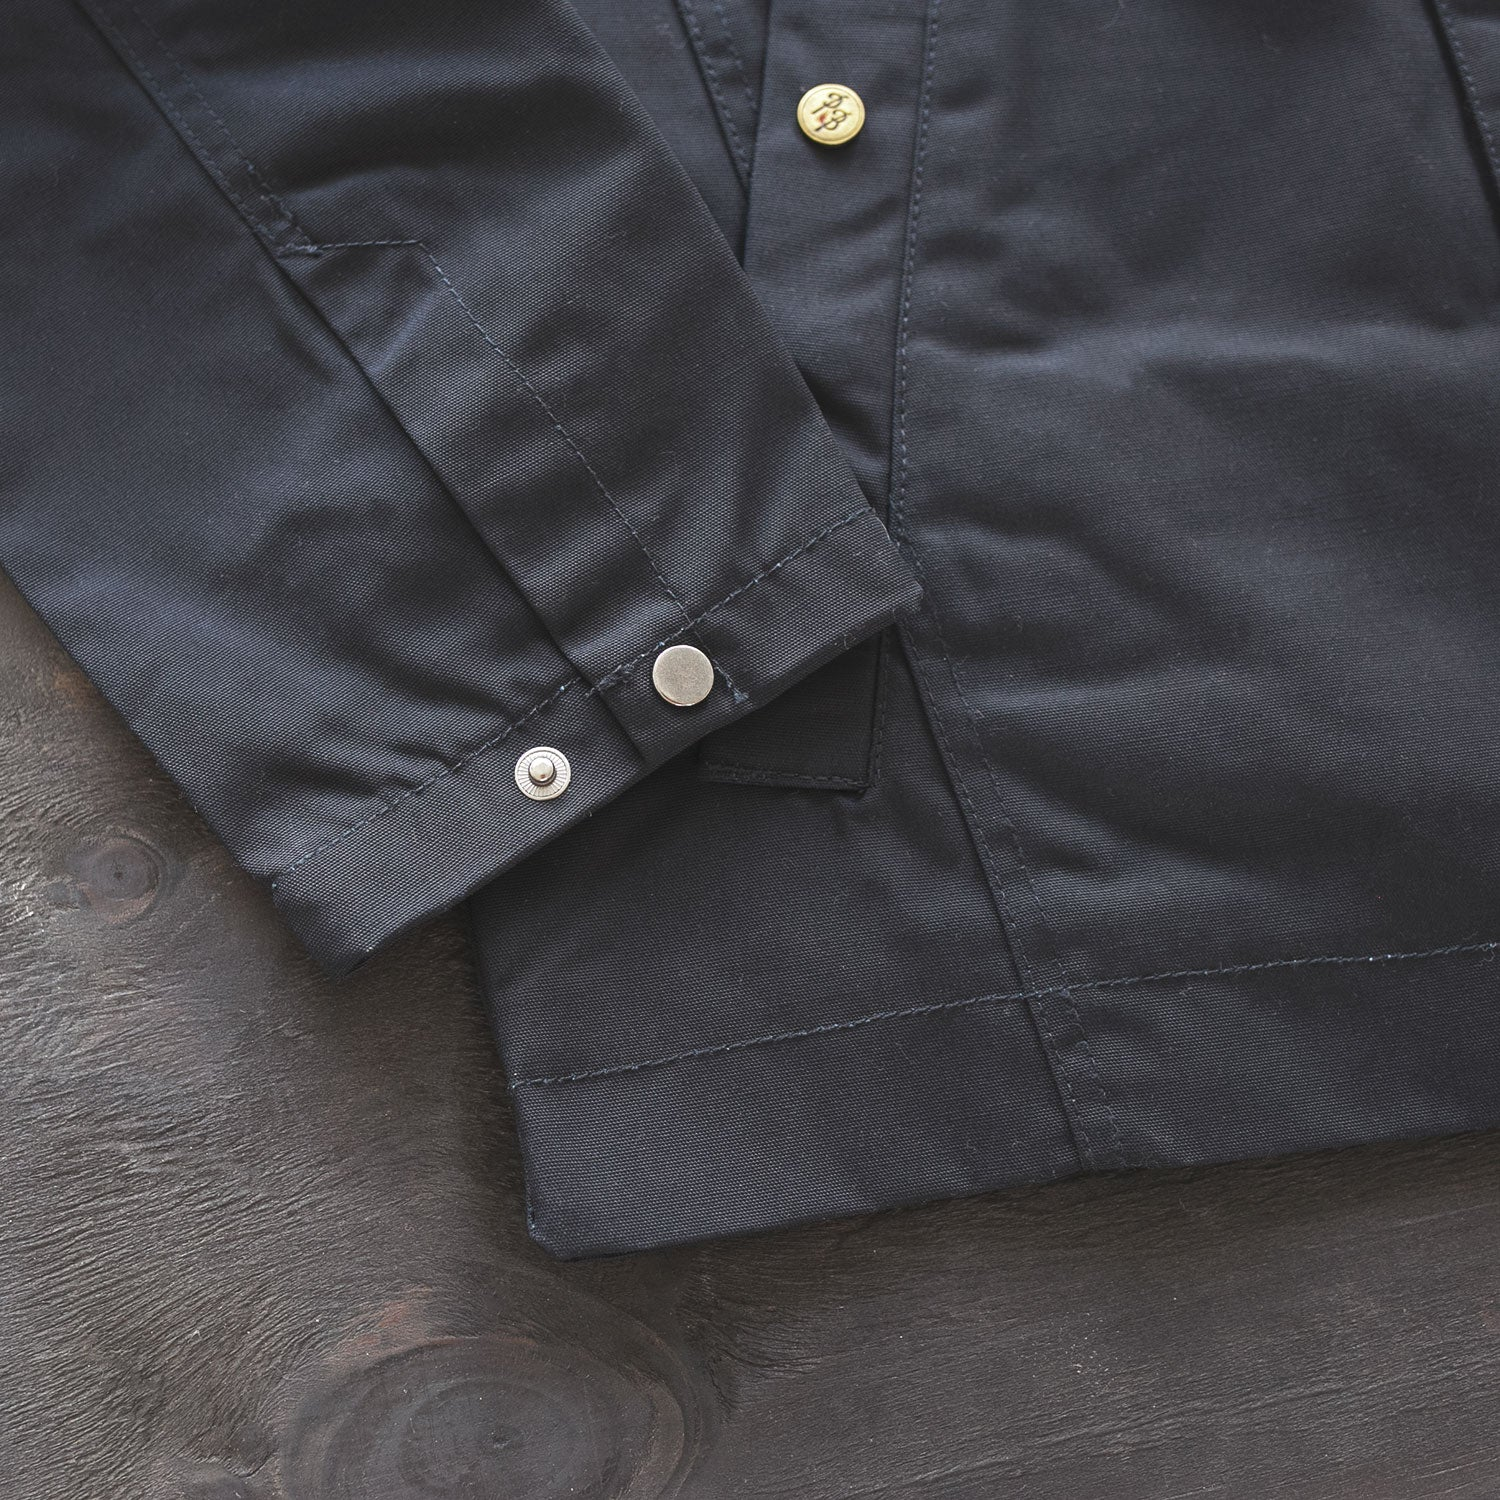 canvas work jacket details petrol burn